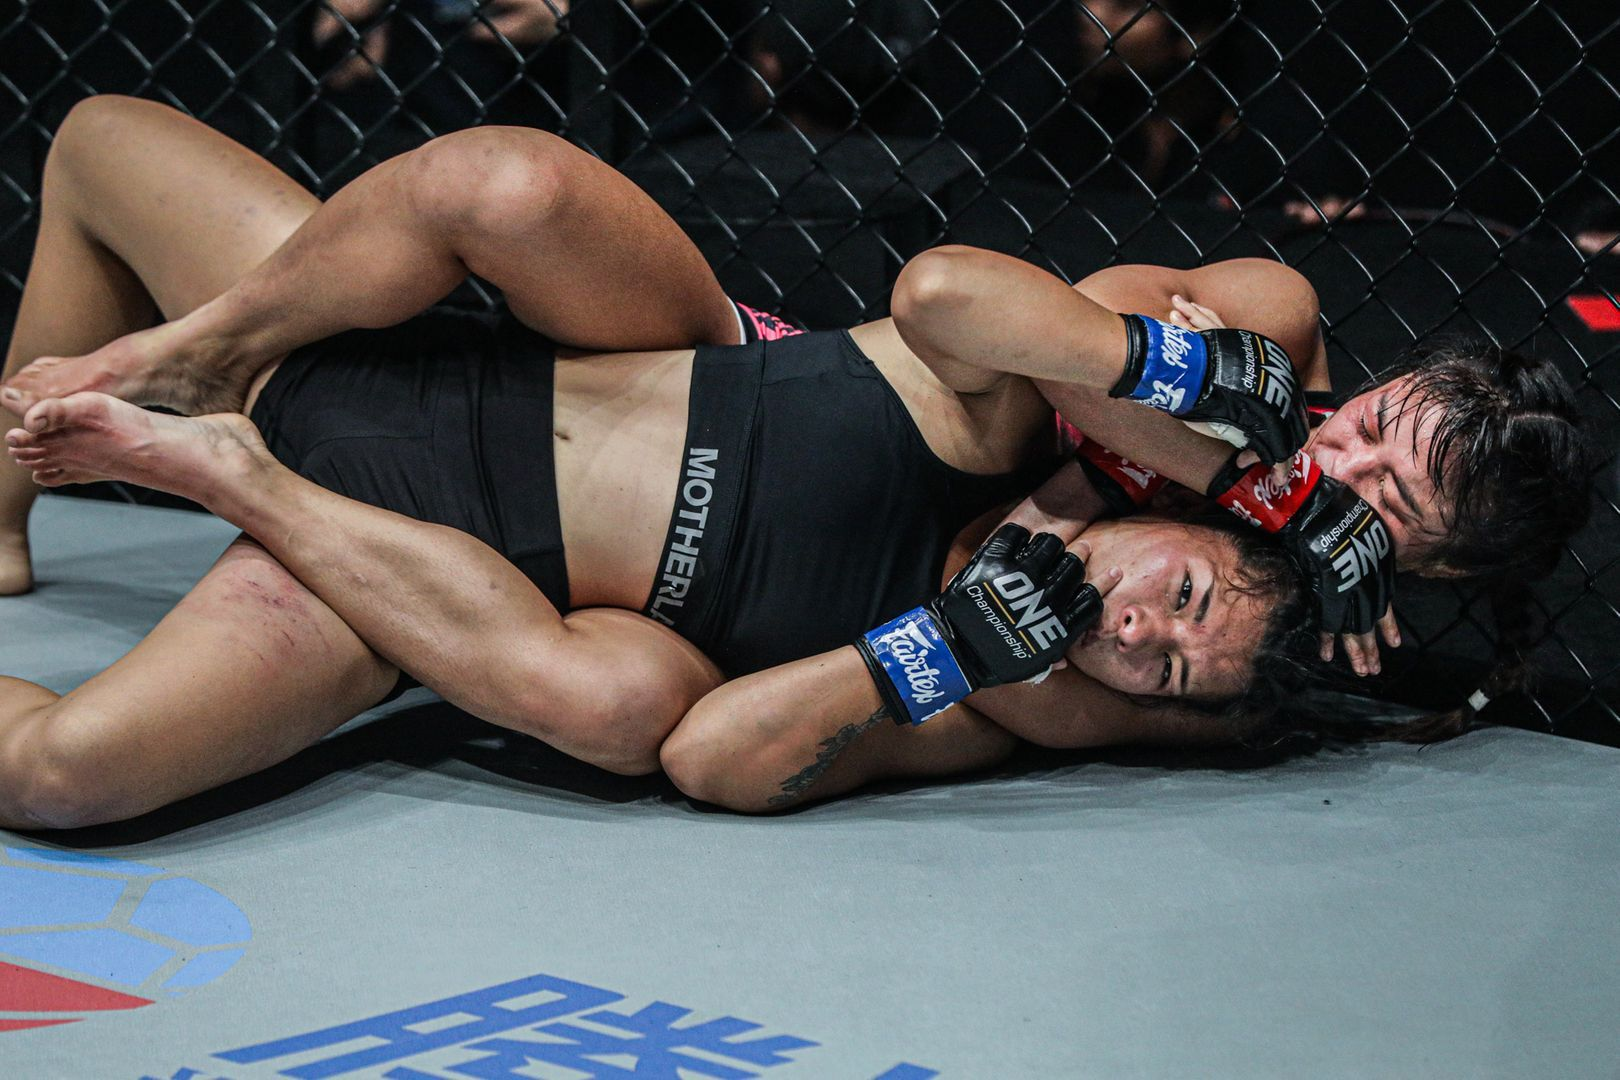 Stamp Fairtex submits Asha Roka via rear-naked choke